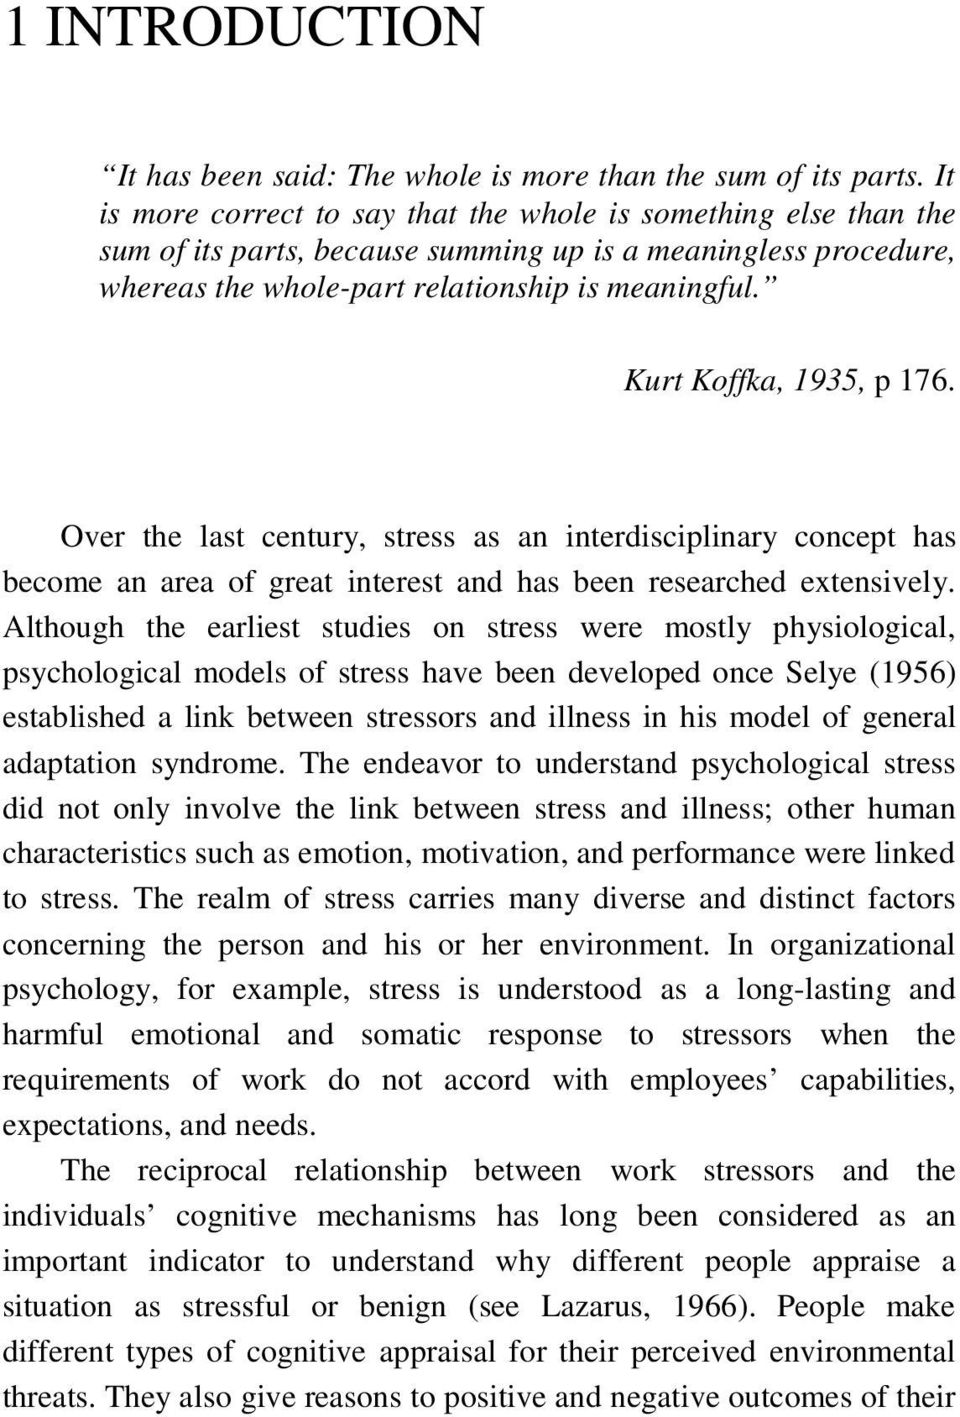 Kurt Koffka, 1935, p 176. Over the last century, stress as an interdisciplinary concept has become an area of great interest and has been researched extensively.